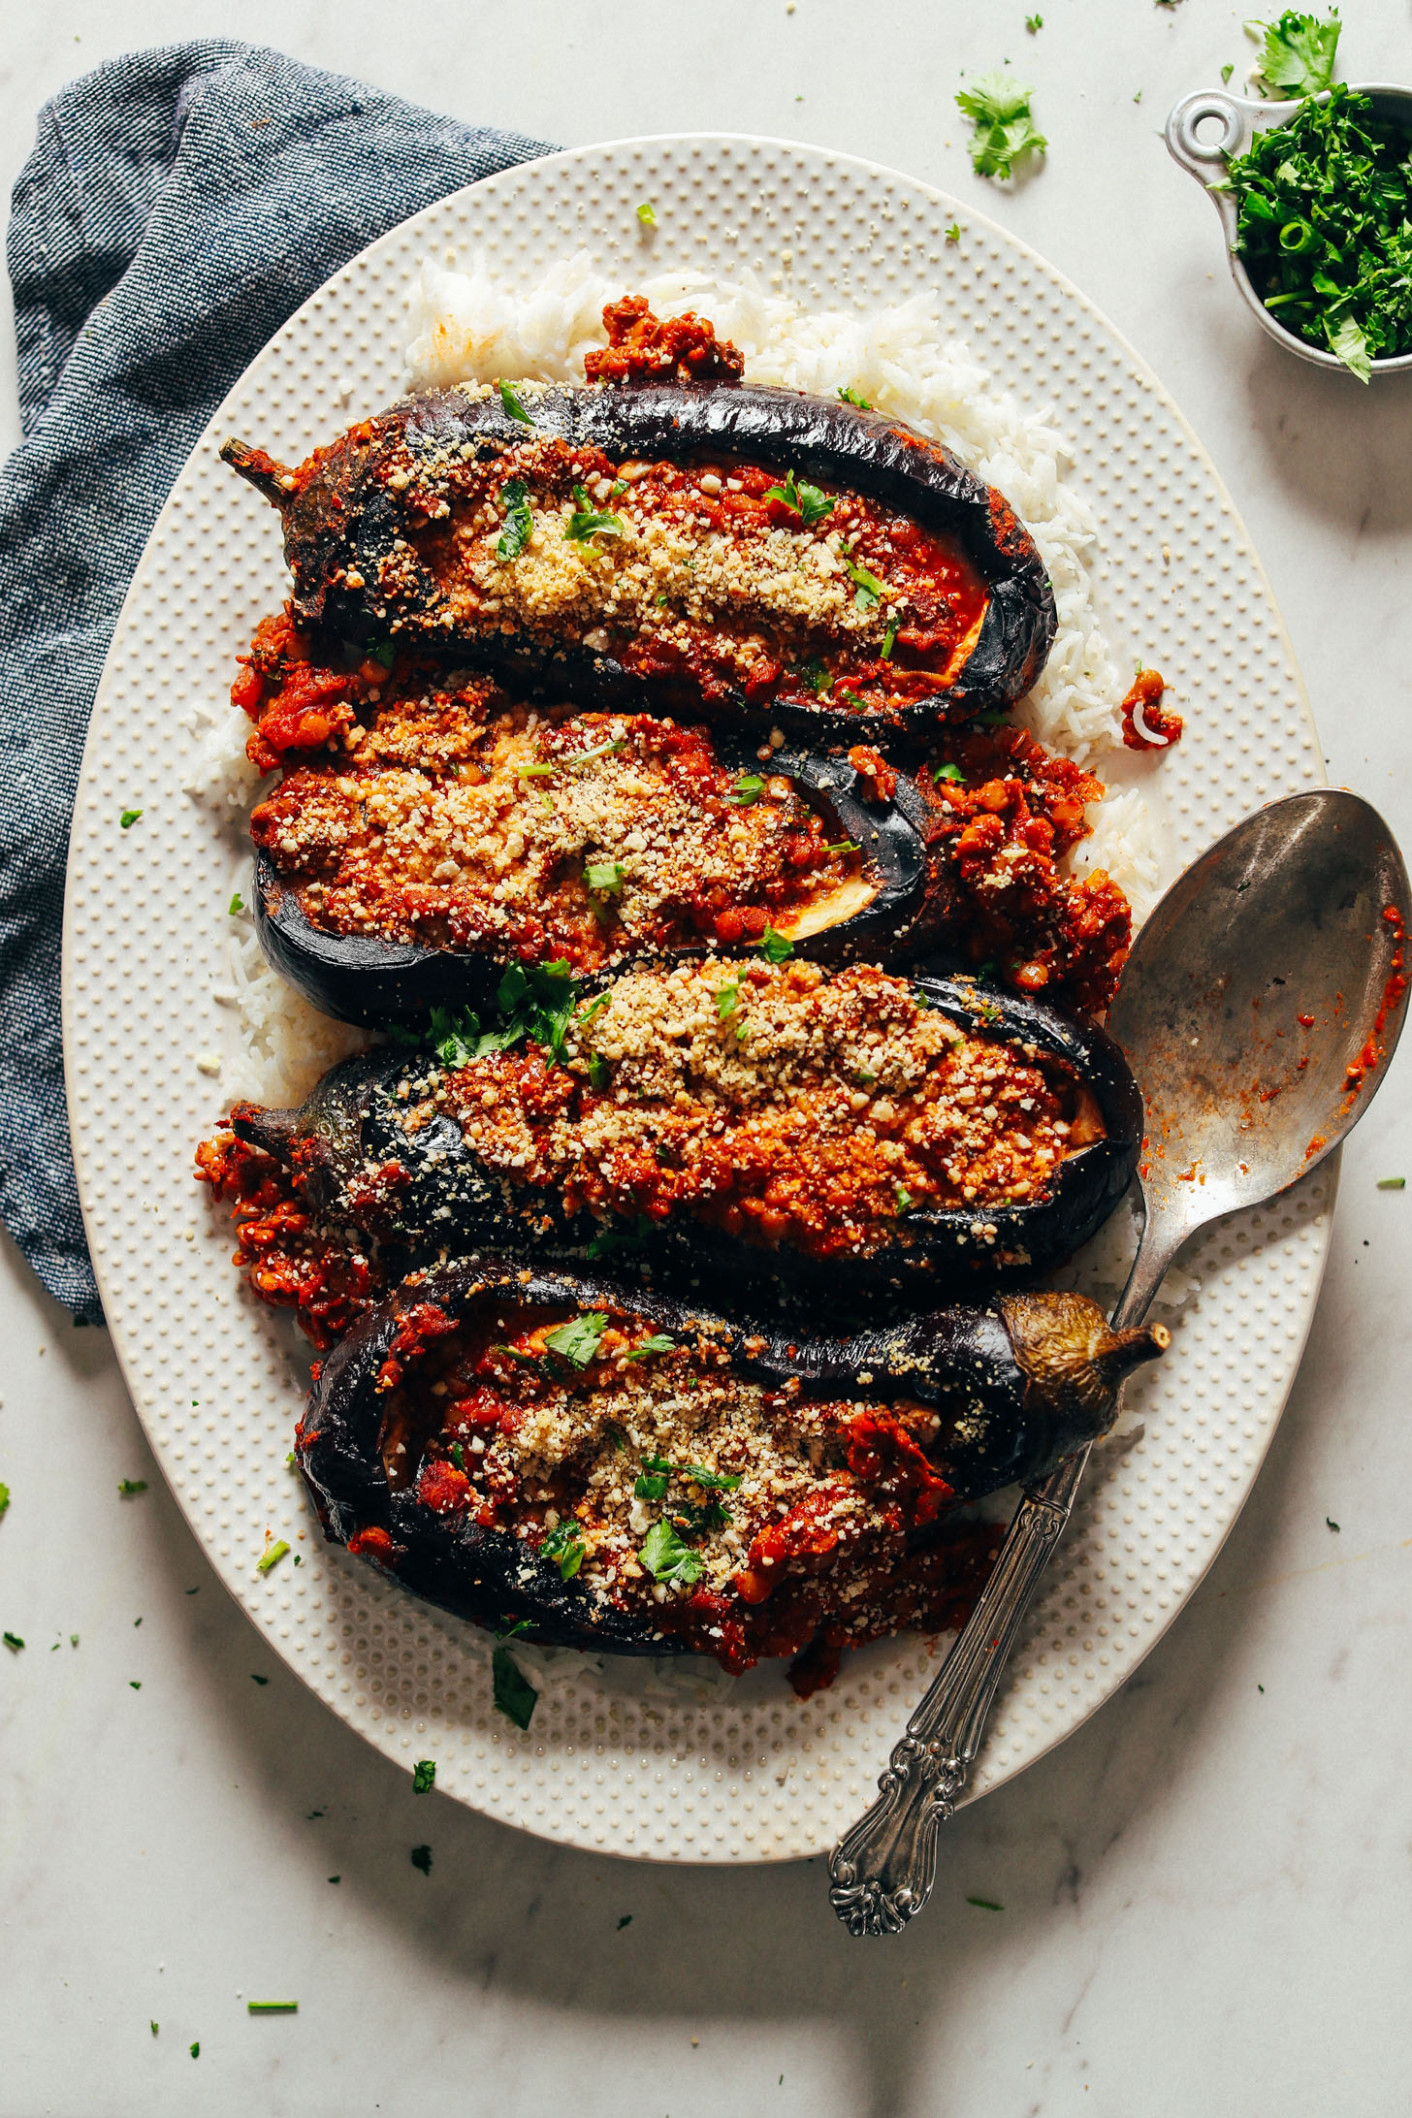 baked stuffed eggplant recipes easy